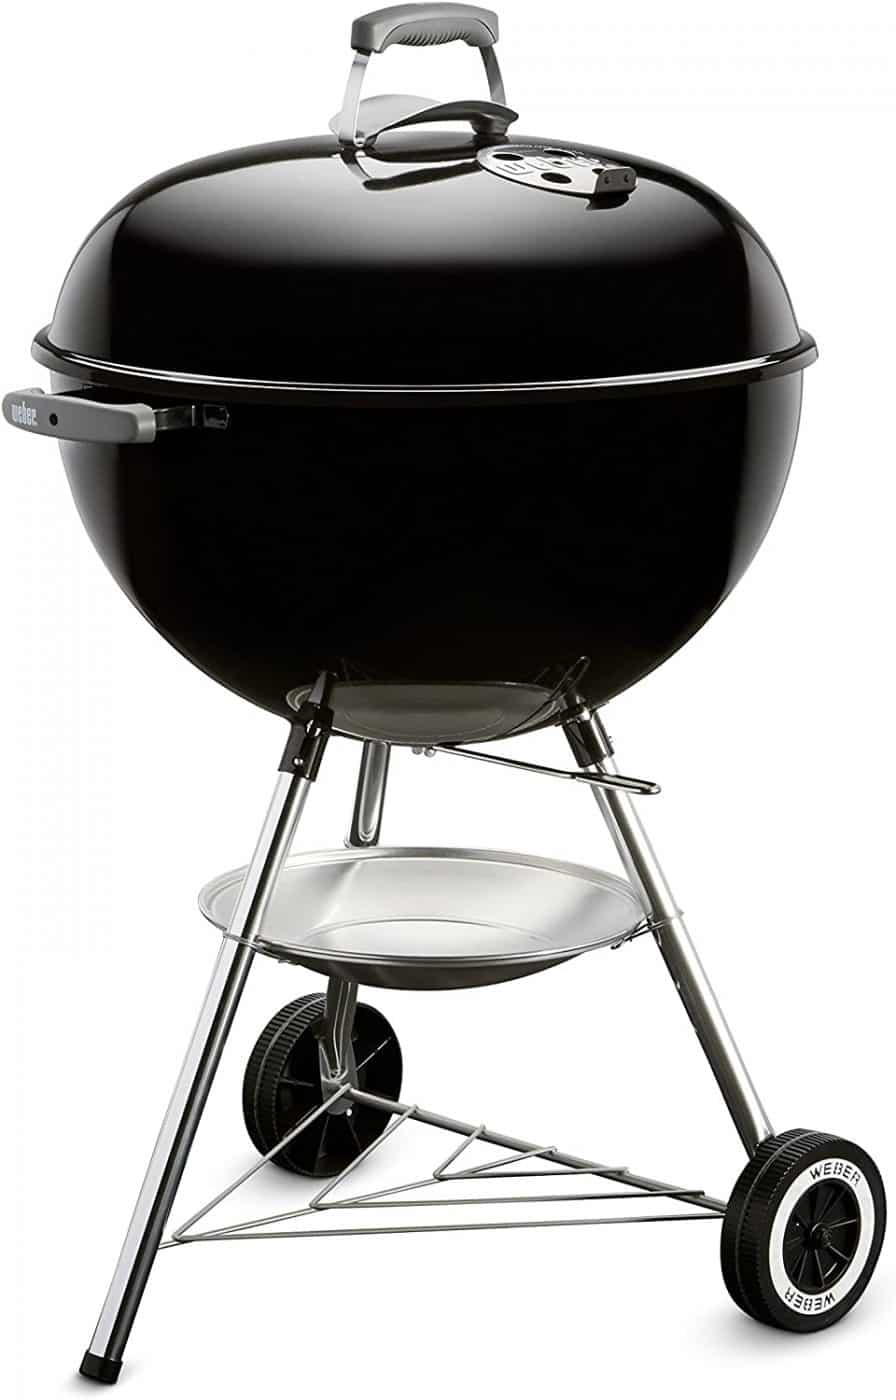 Charcoal grill with lid on